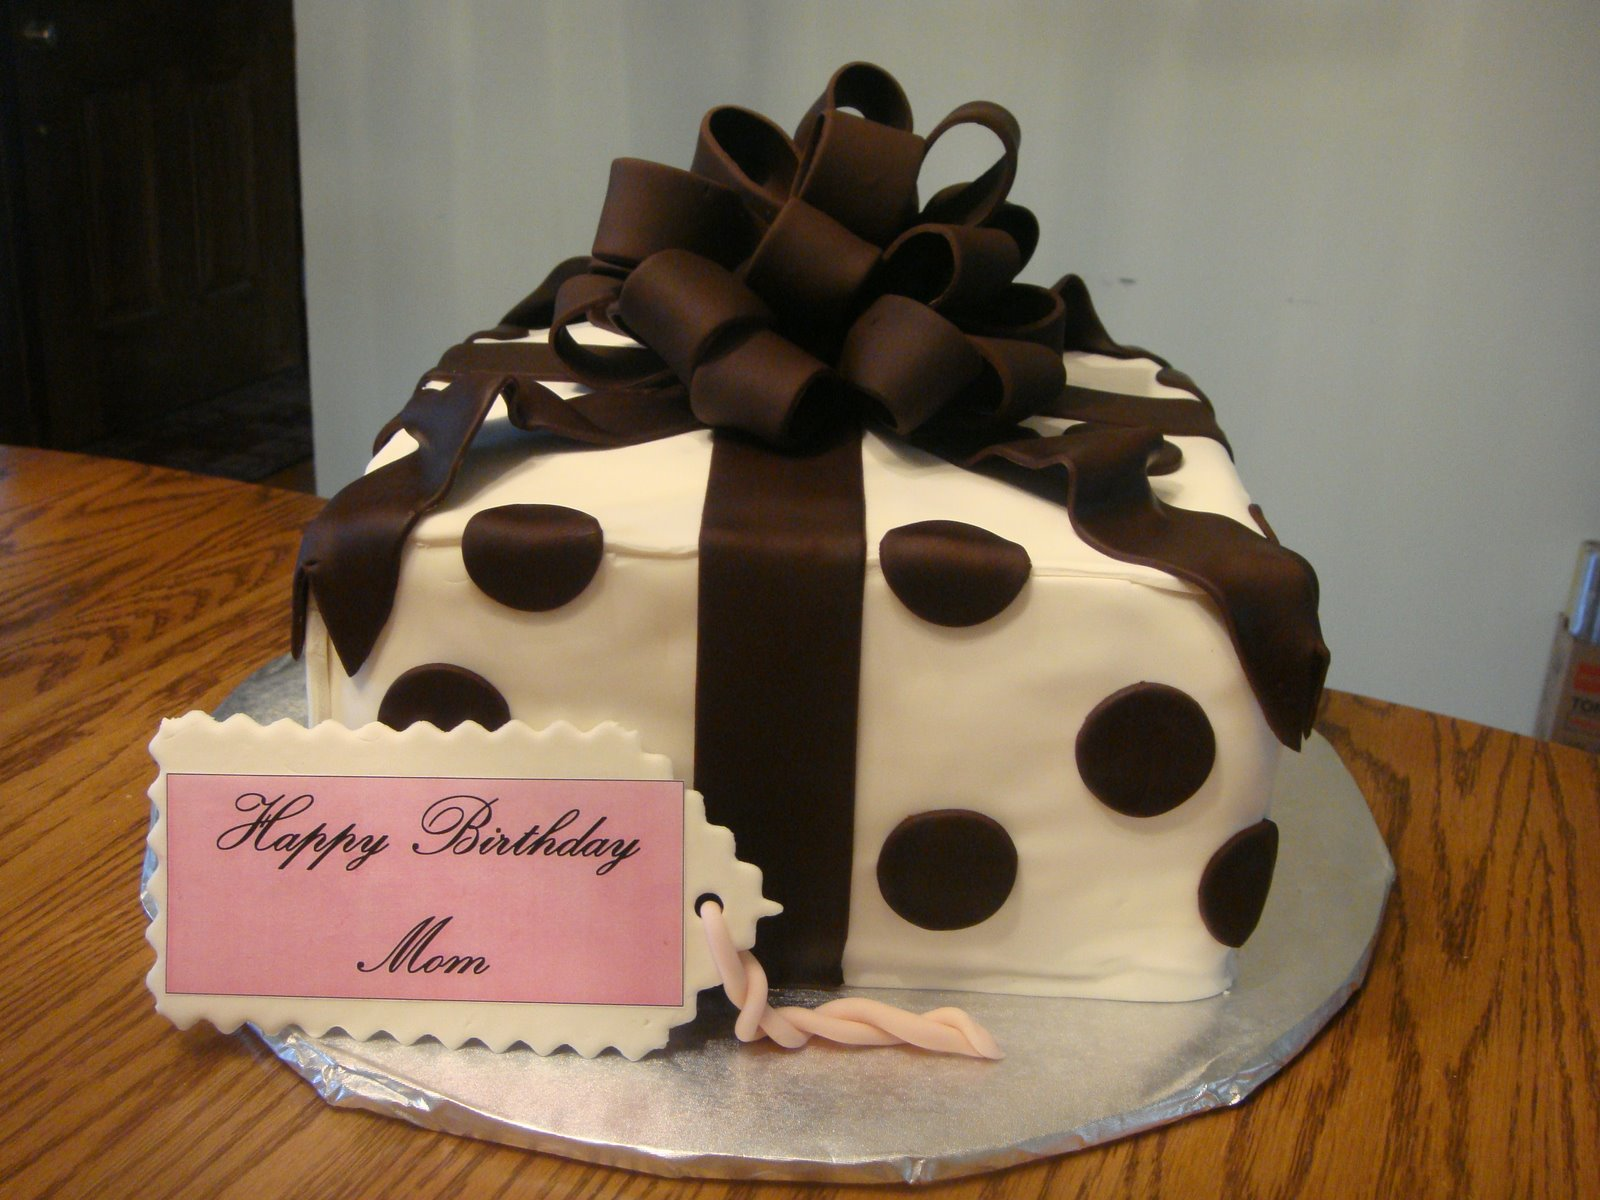 65th Birthday Cake Ideas Decorations For View